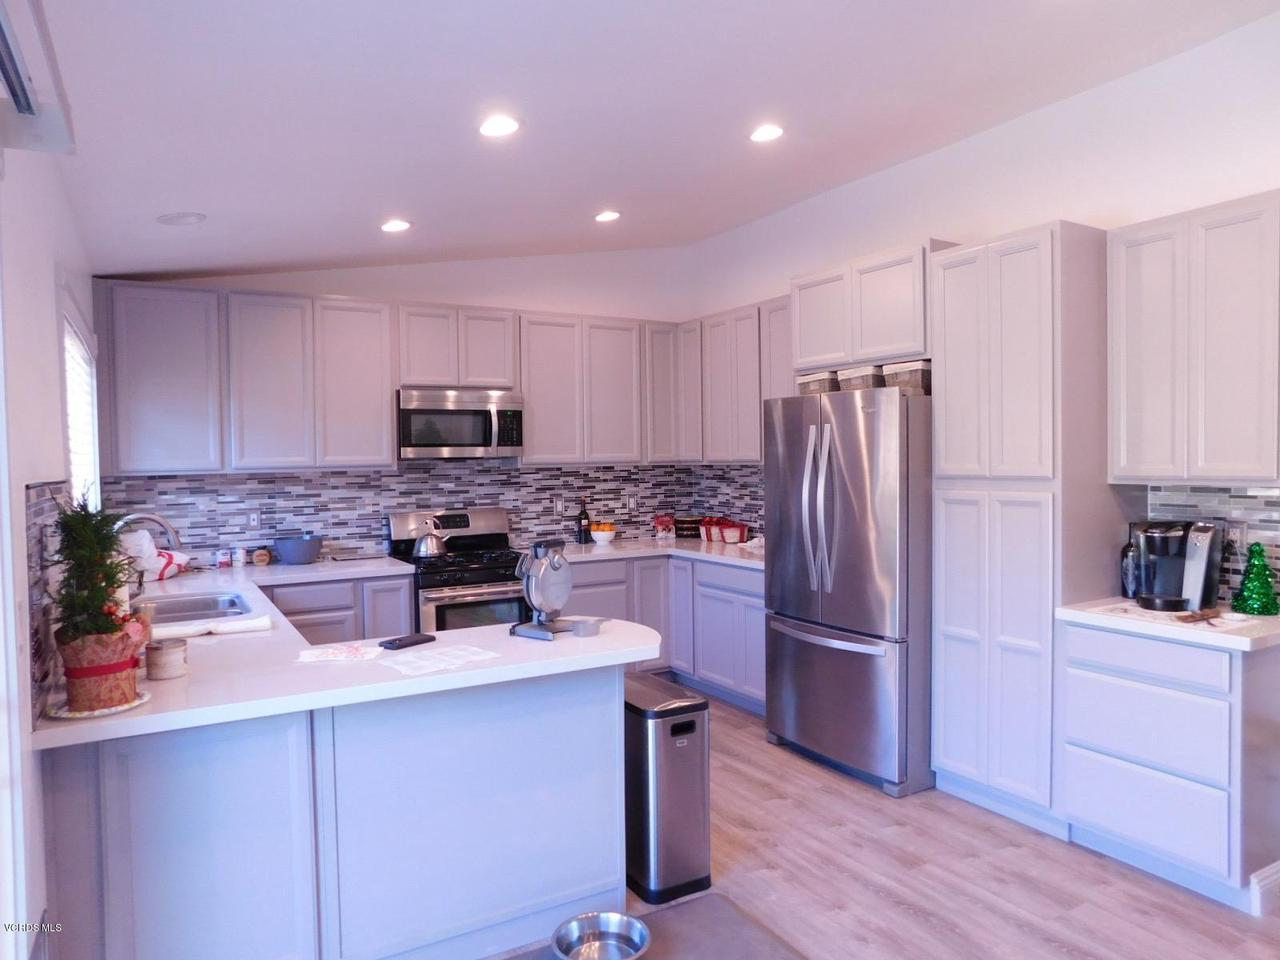 6489 DUKE, Moorpark, CA 93021 - B_Kitchen 4